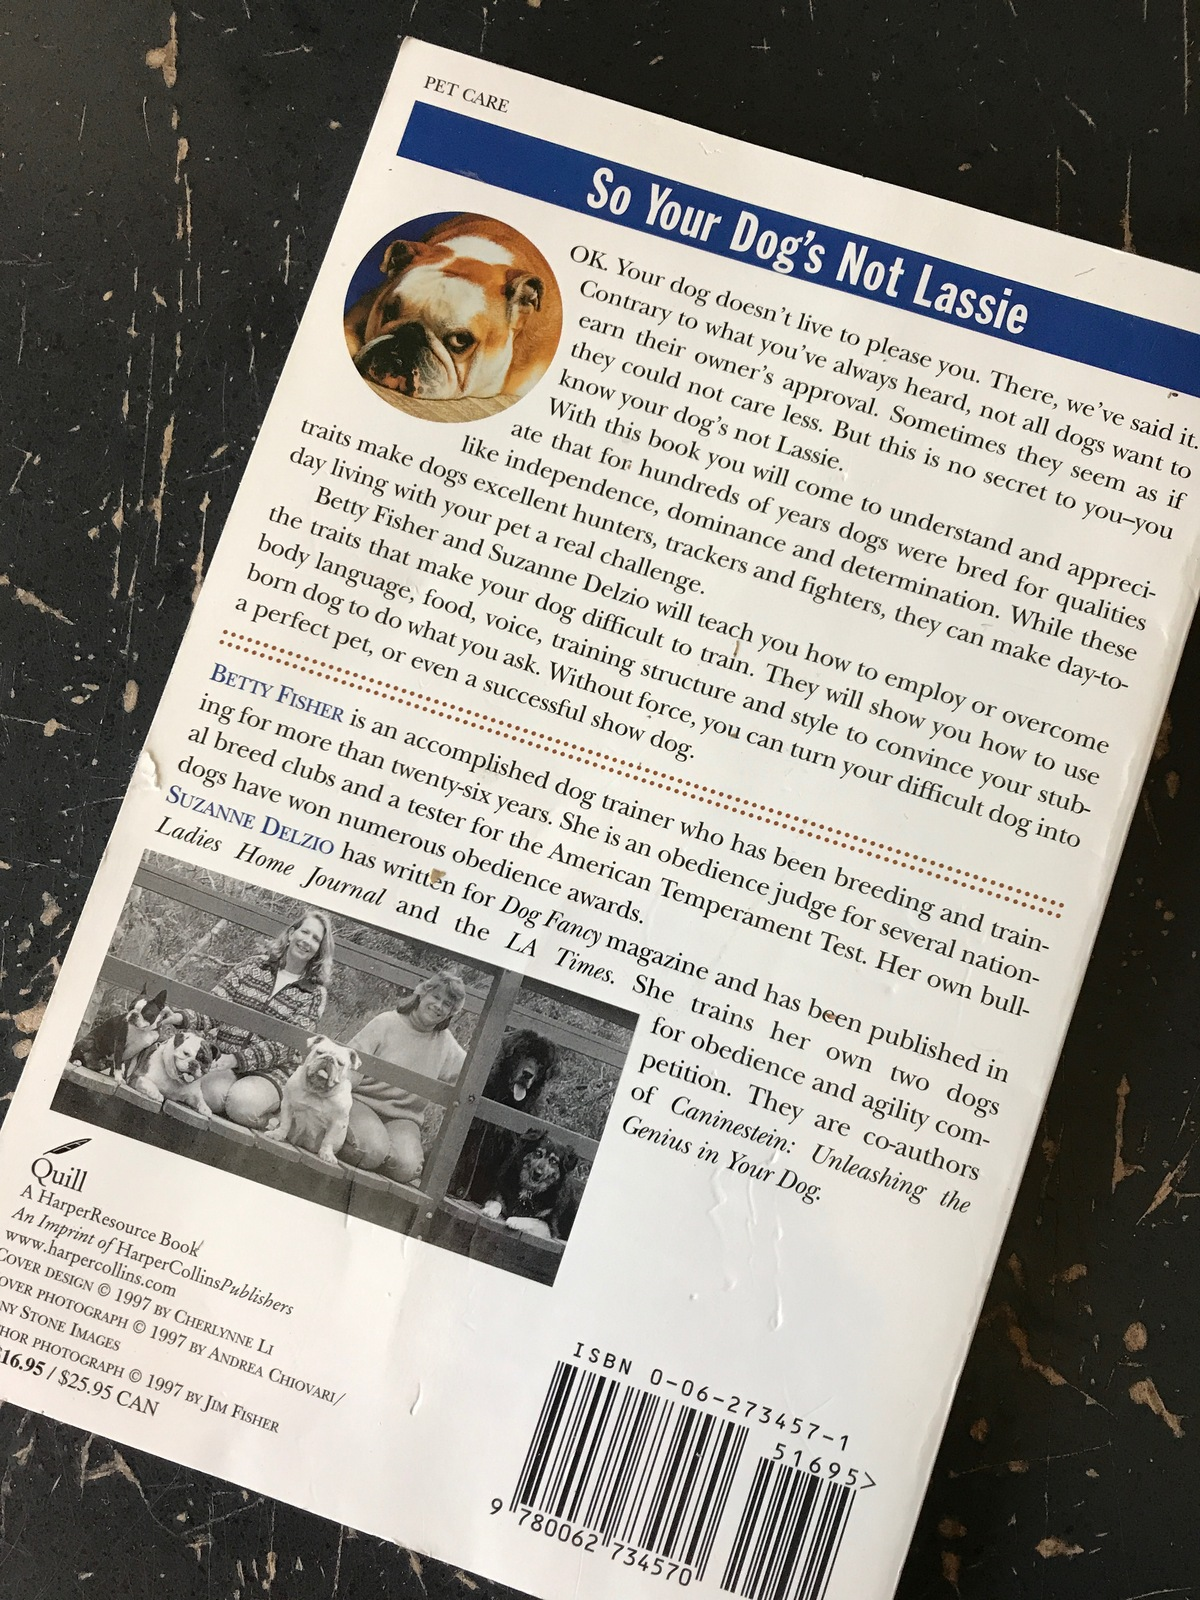 So Your Dog's Not Lassie Fisher Delzio training tips for your dog excellent cond